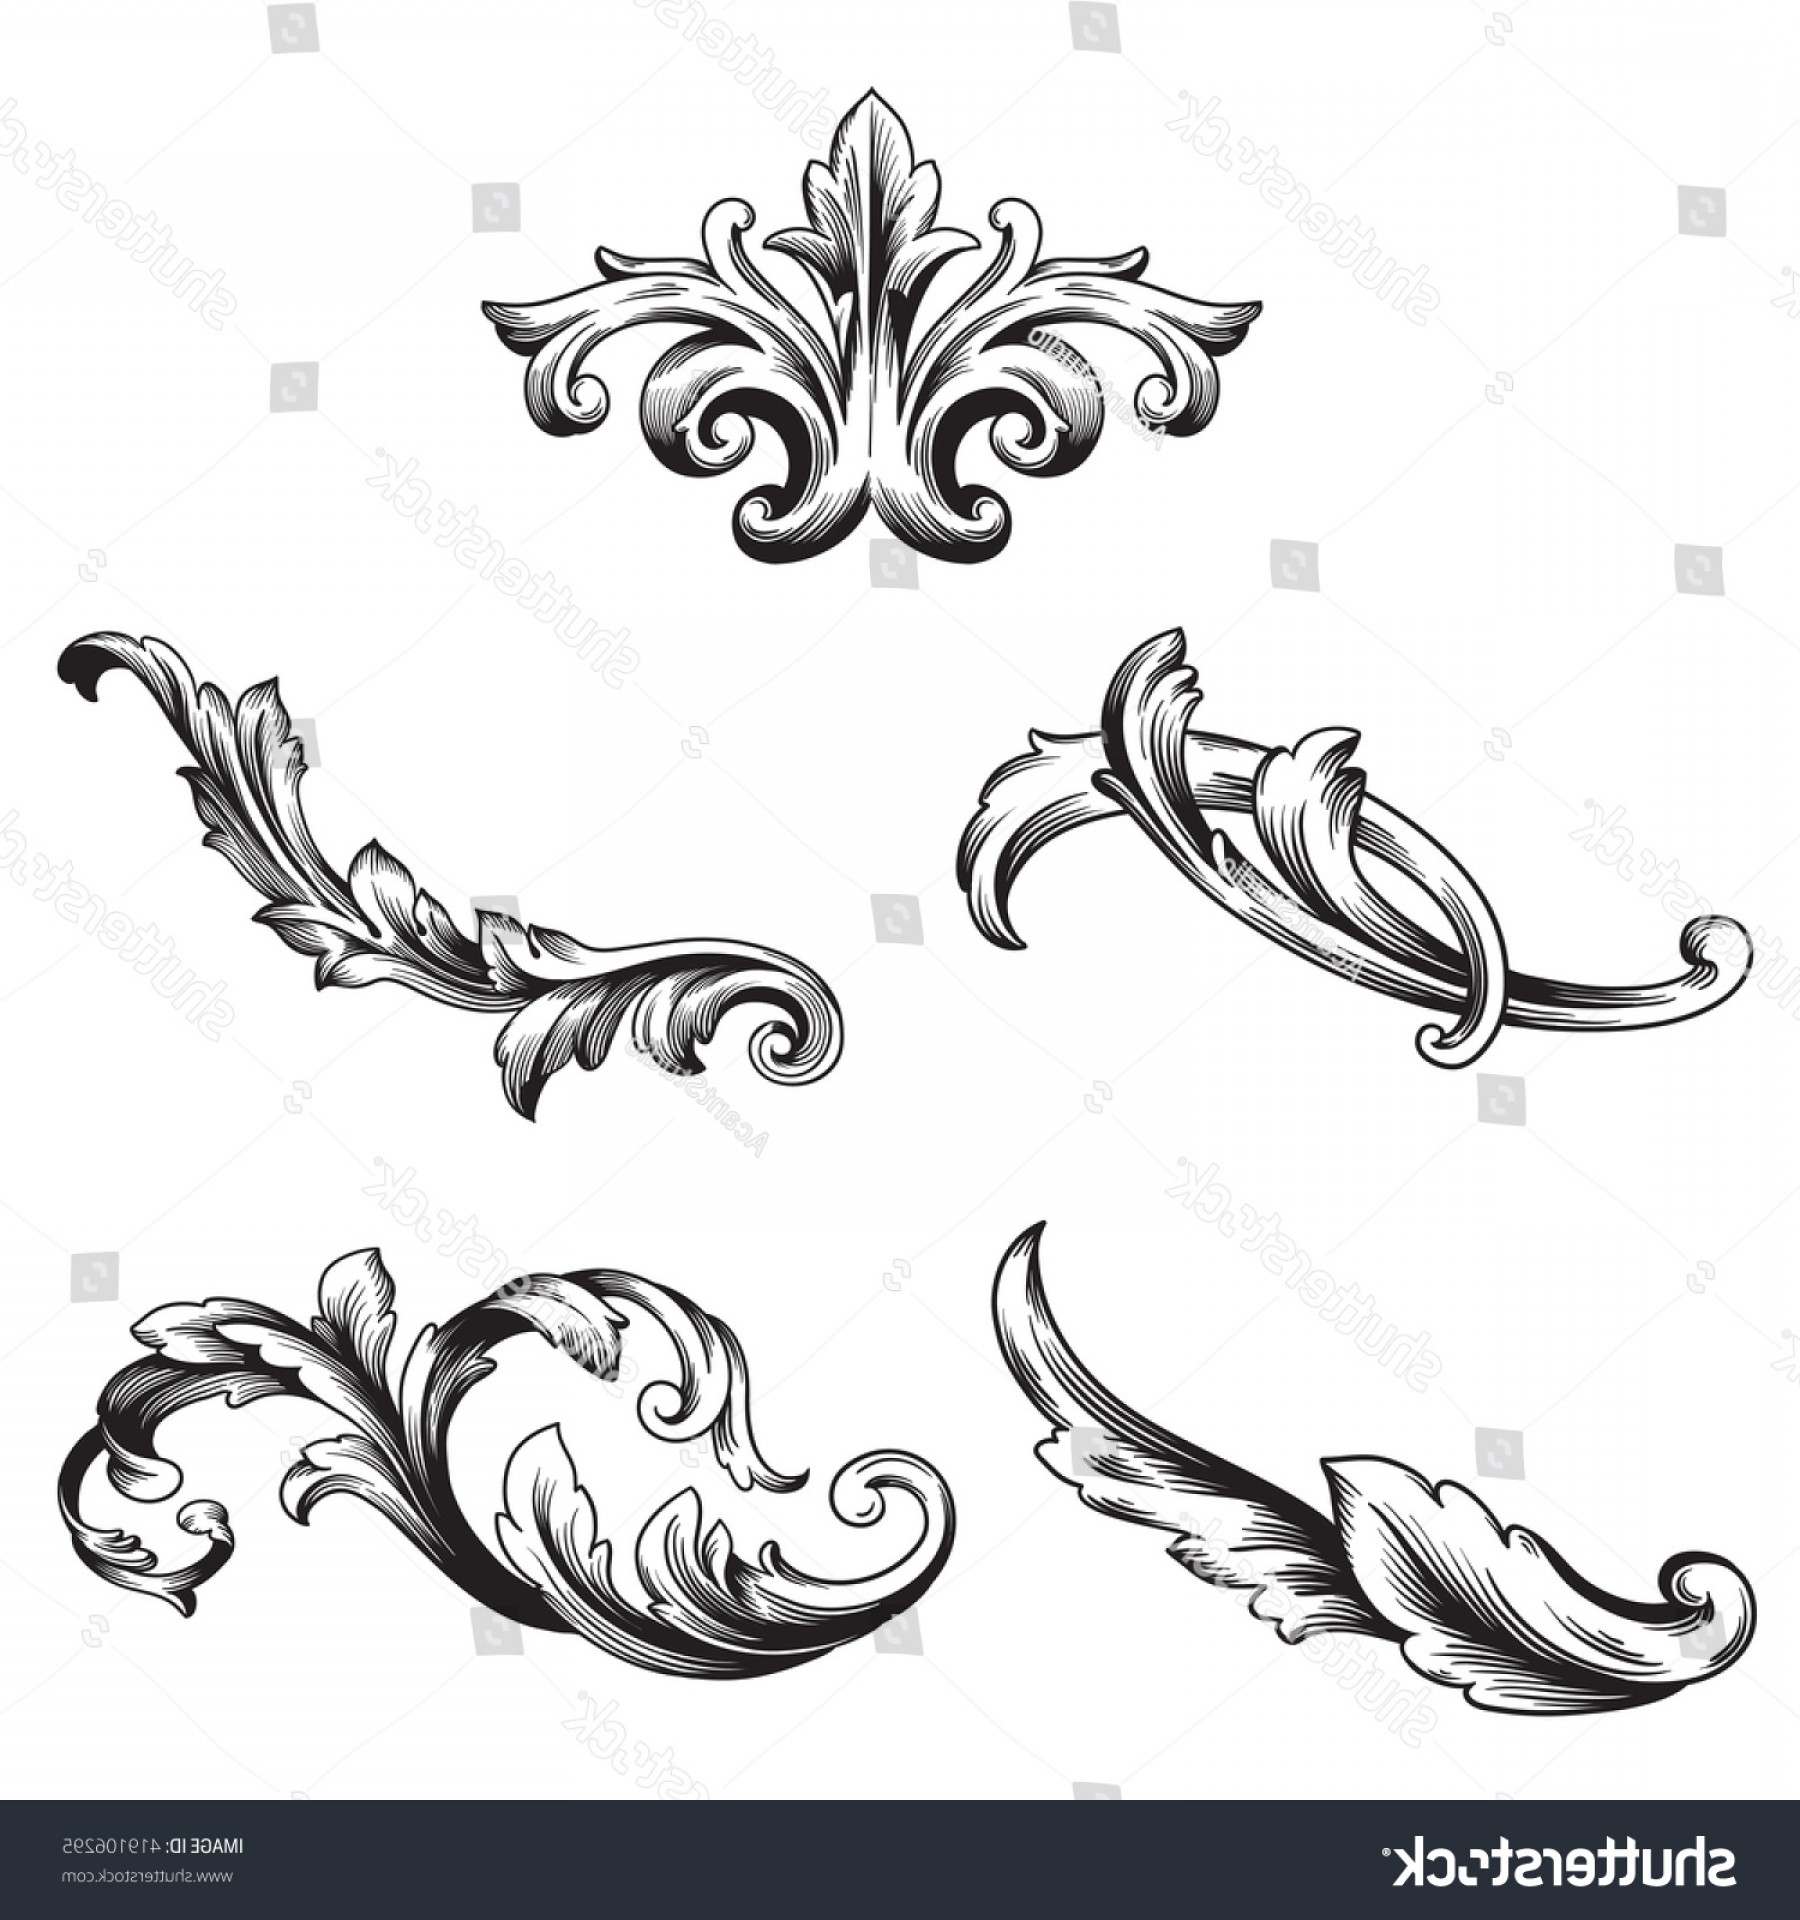 Baroque Vector Clip Art: Illustration Set Vintage Design Elements Baroque